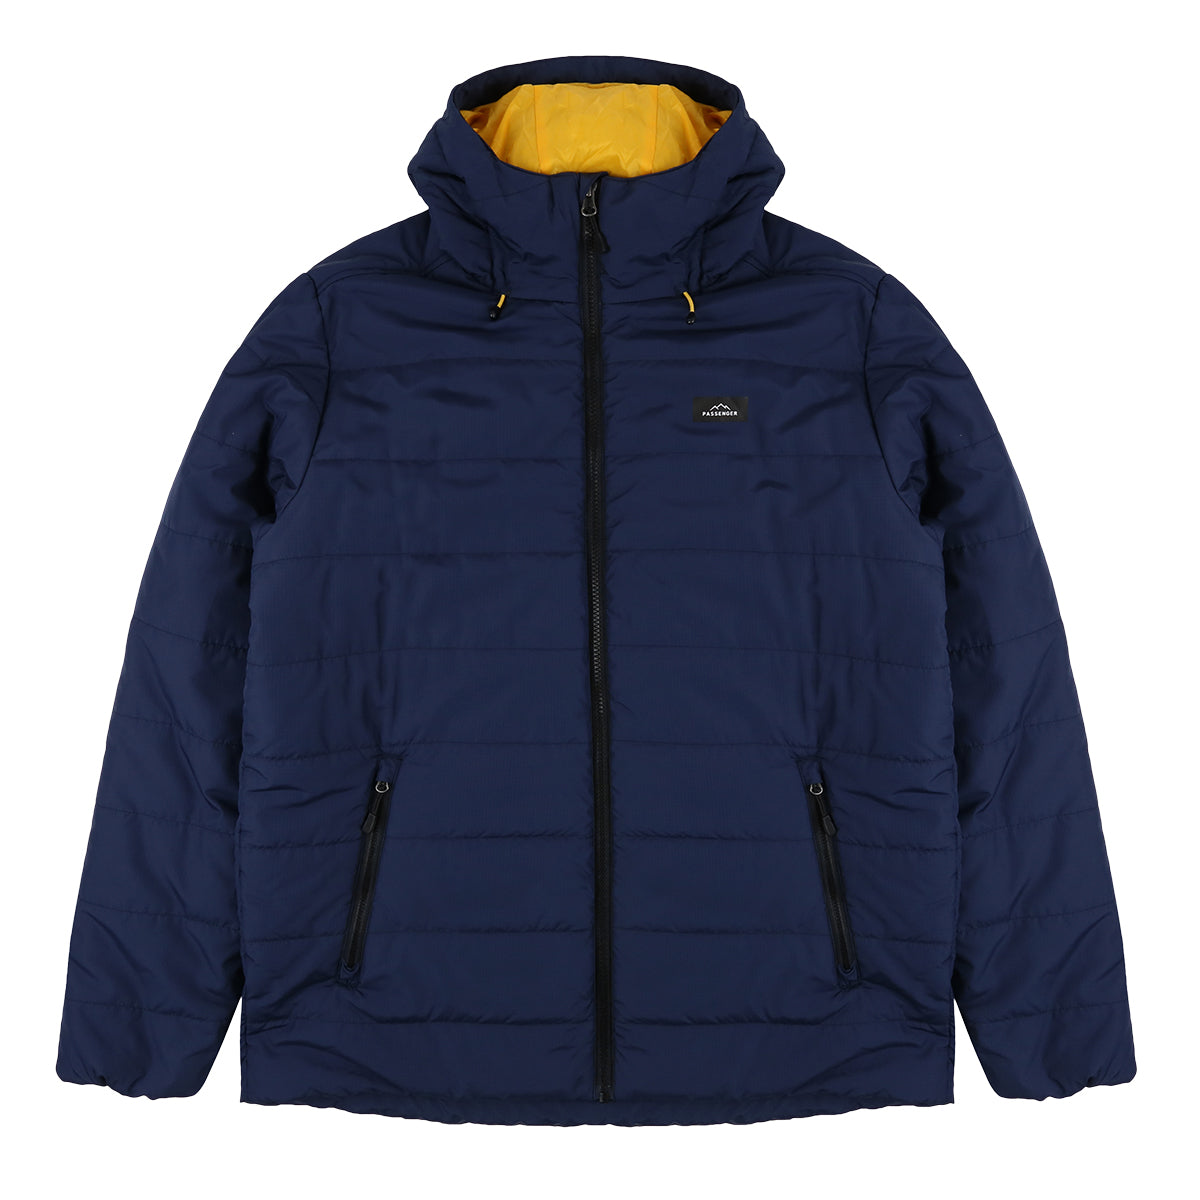 Patrol Insulated Jacket - Navy image 8